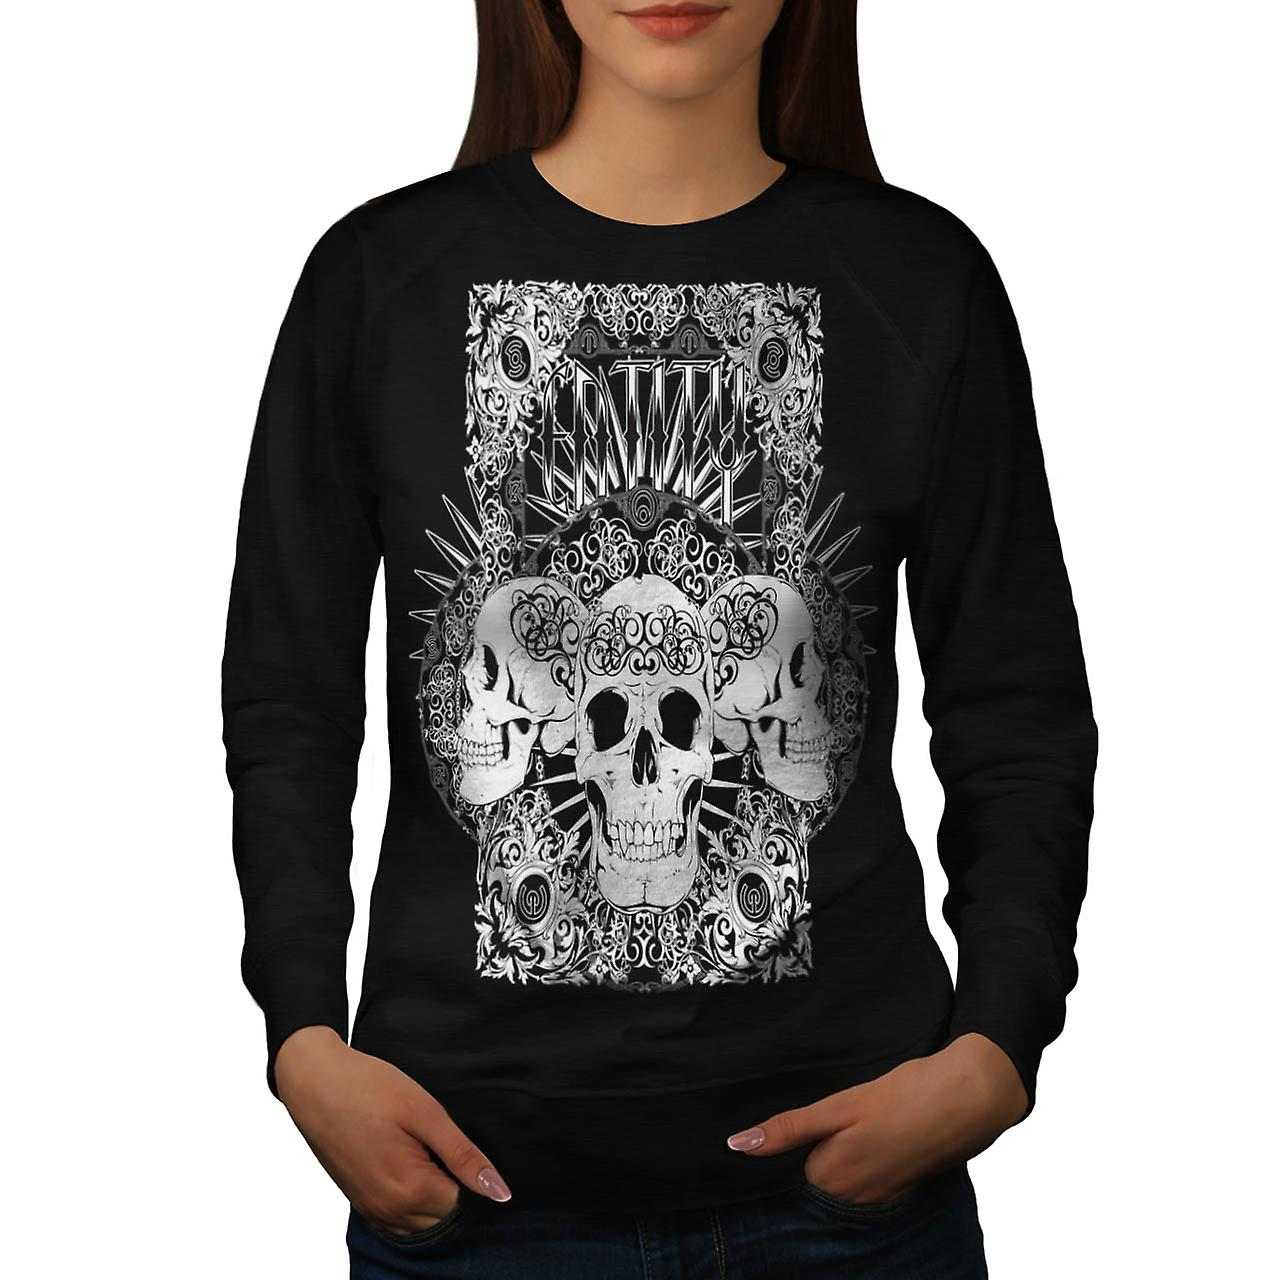 Entity Monster Skull Grave Yard Women Black Sweatshirt | Wellcoda